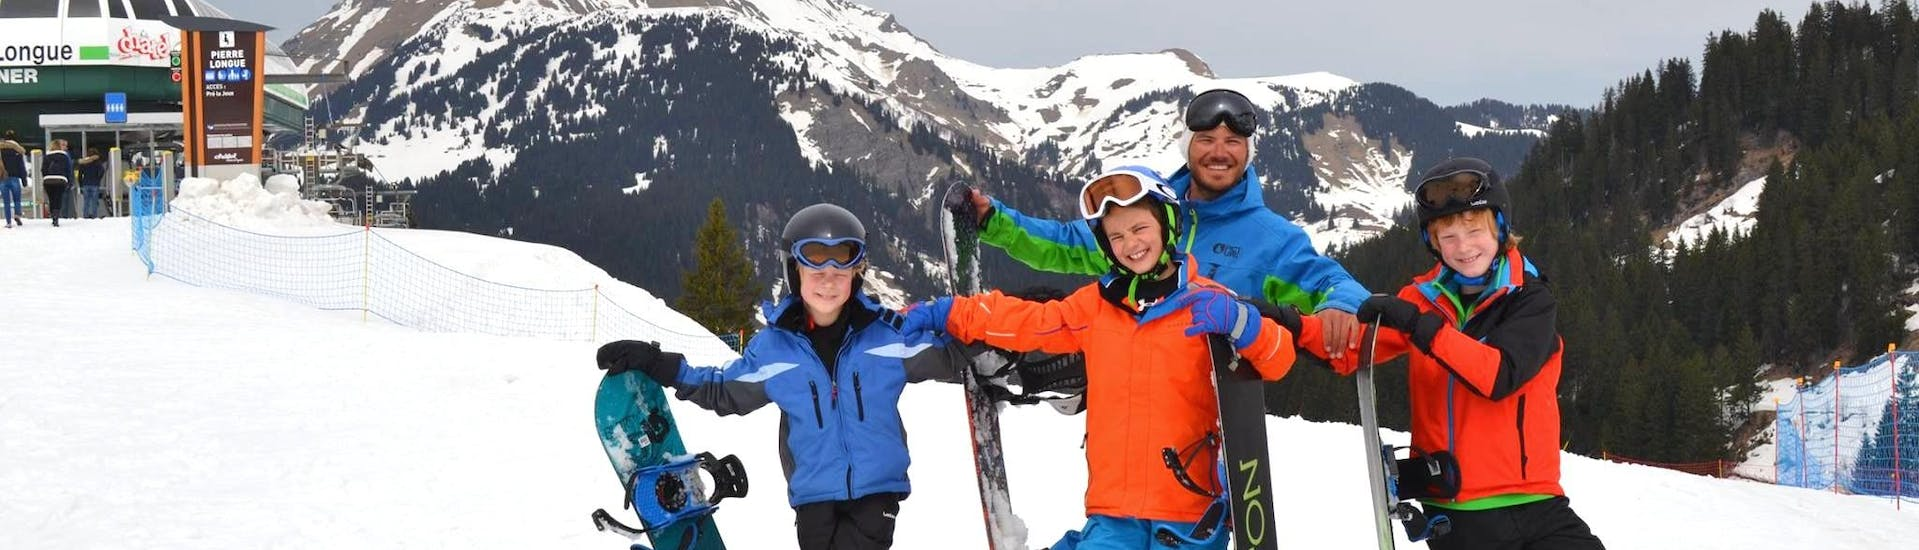 private-snowboarding-lessons-holidays-all-levels-esi-chatel-hero